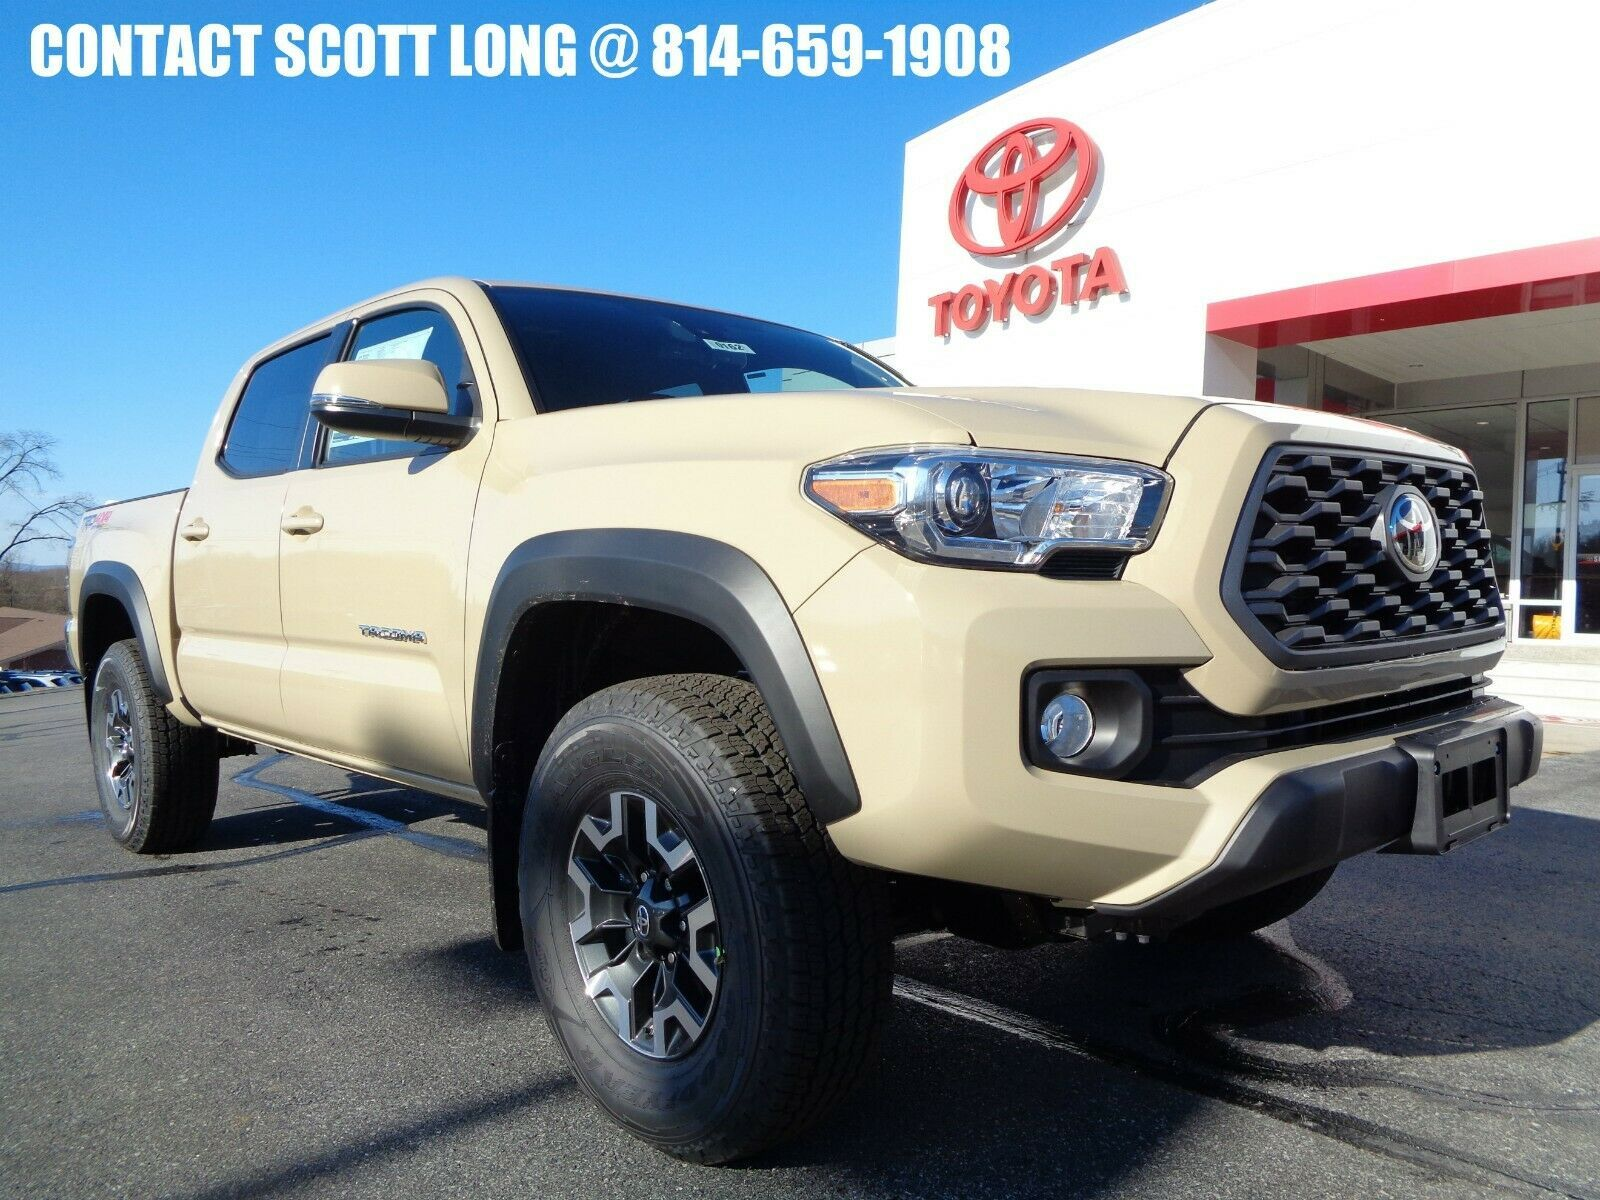 Used 2020 Toyota Tacoma New 2020 Double Cab 4 4 3 5l 4wd Trd Off Road New 2020 Tacoma Double Cab 4 4 Trd Off Road 4wd Apple Carplay Quicksand Paint 2020 In 2020 Toyota Tacoma Toyota Tacoma Double Cab Toyota